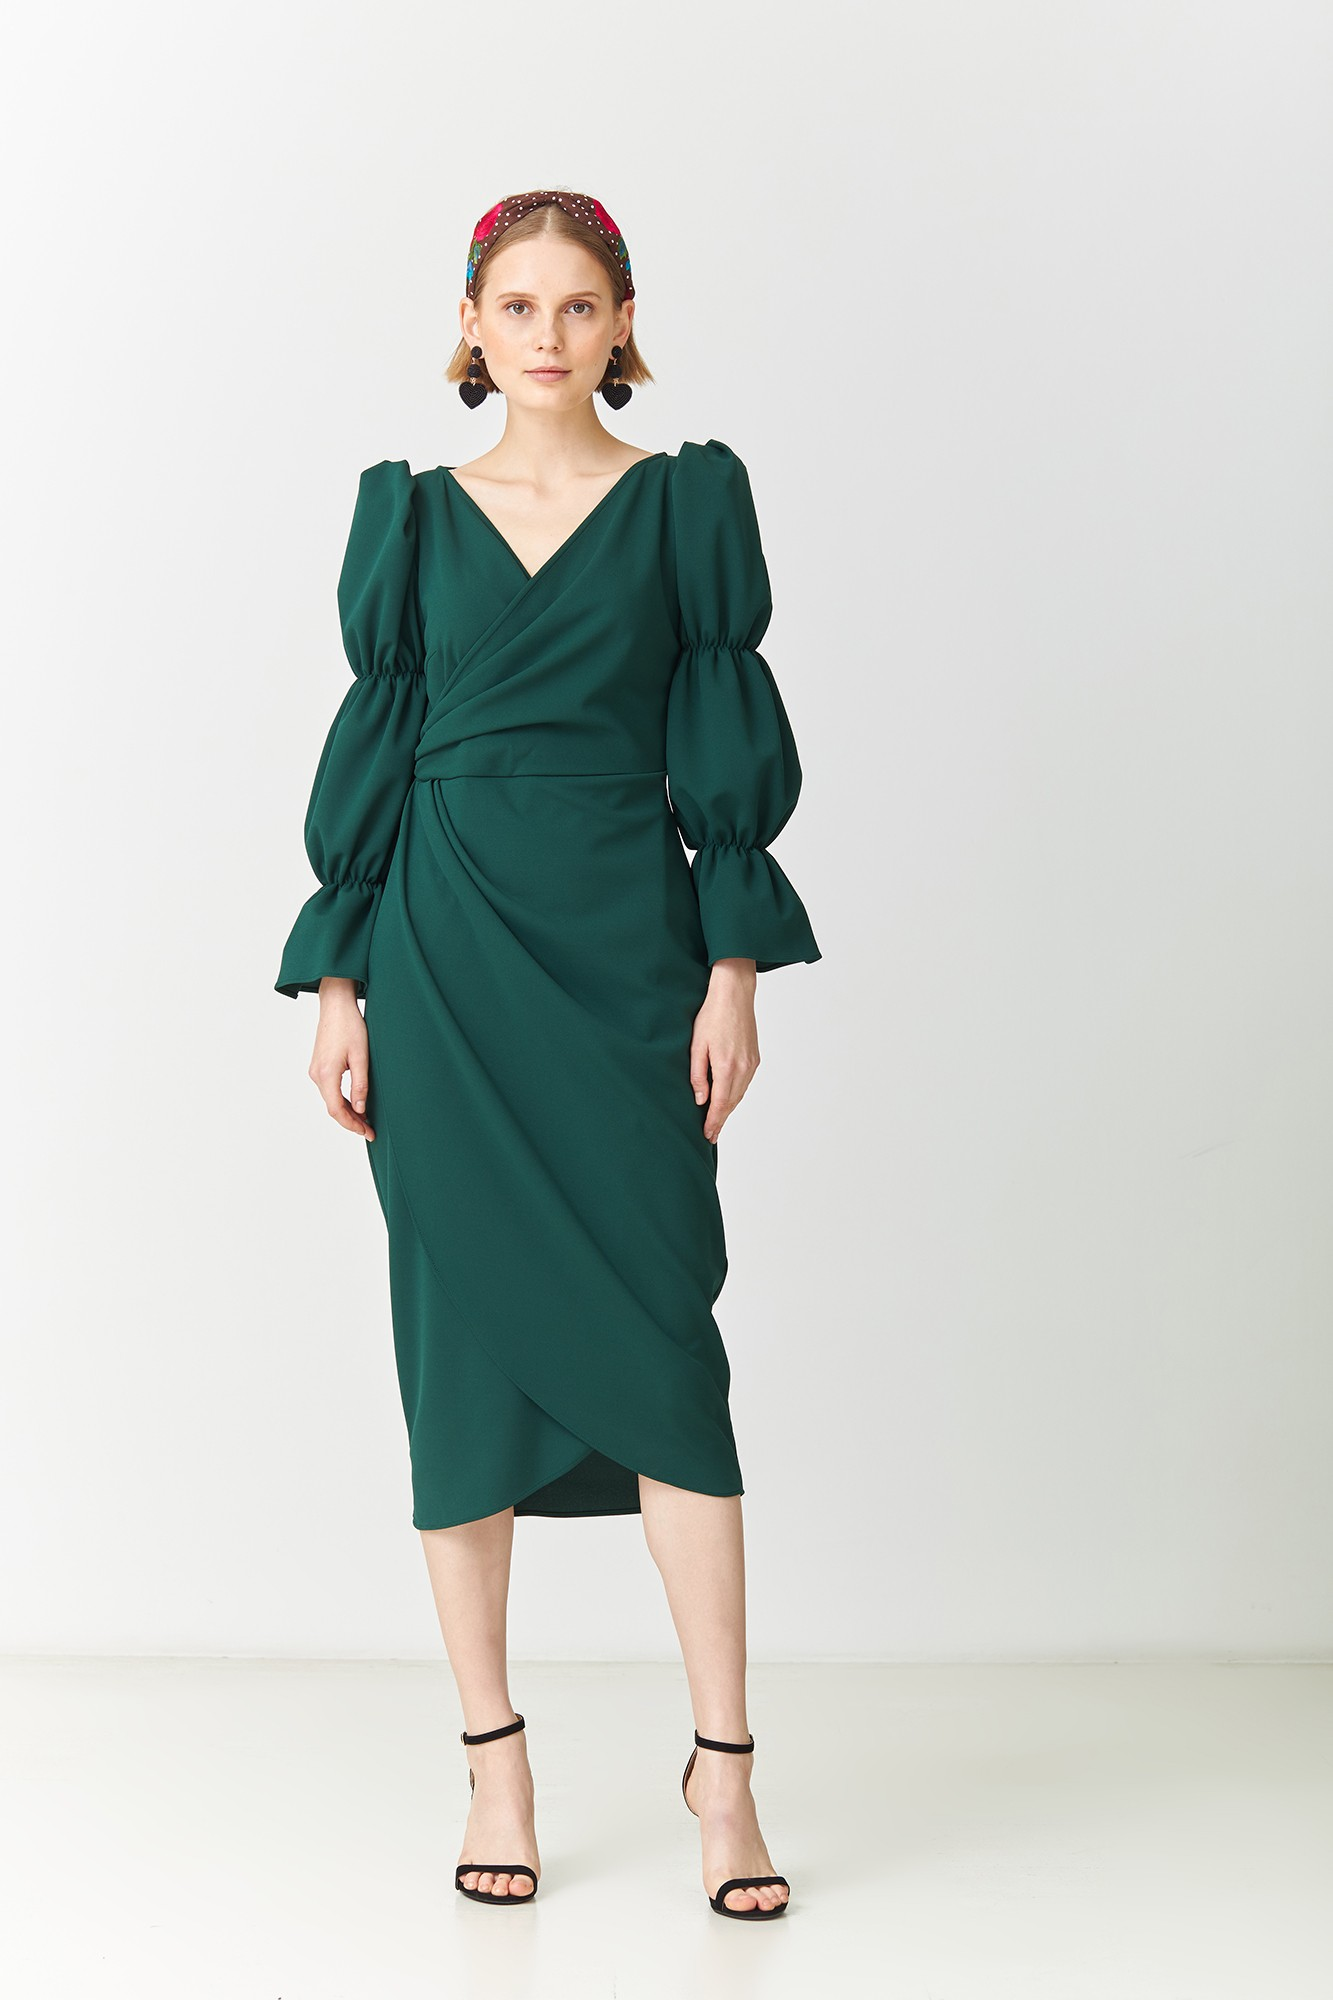 MUNNA GREEN DRESS